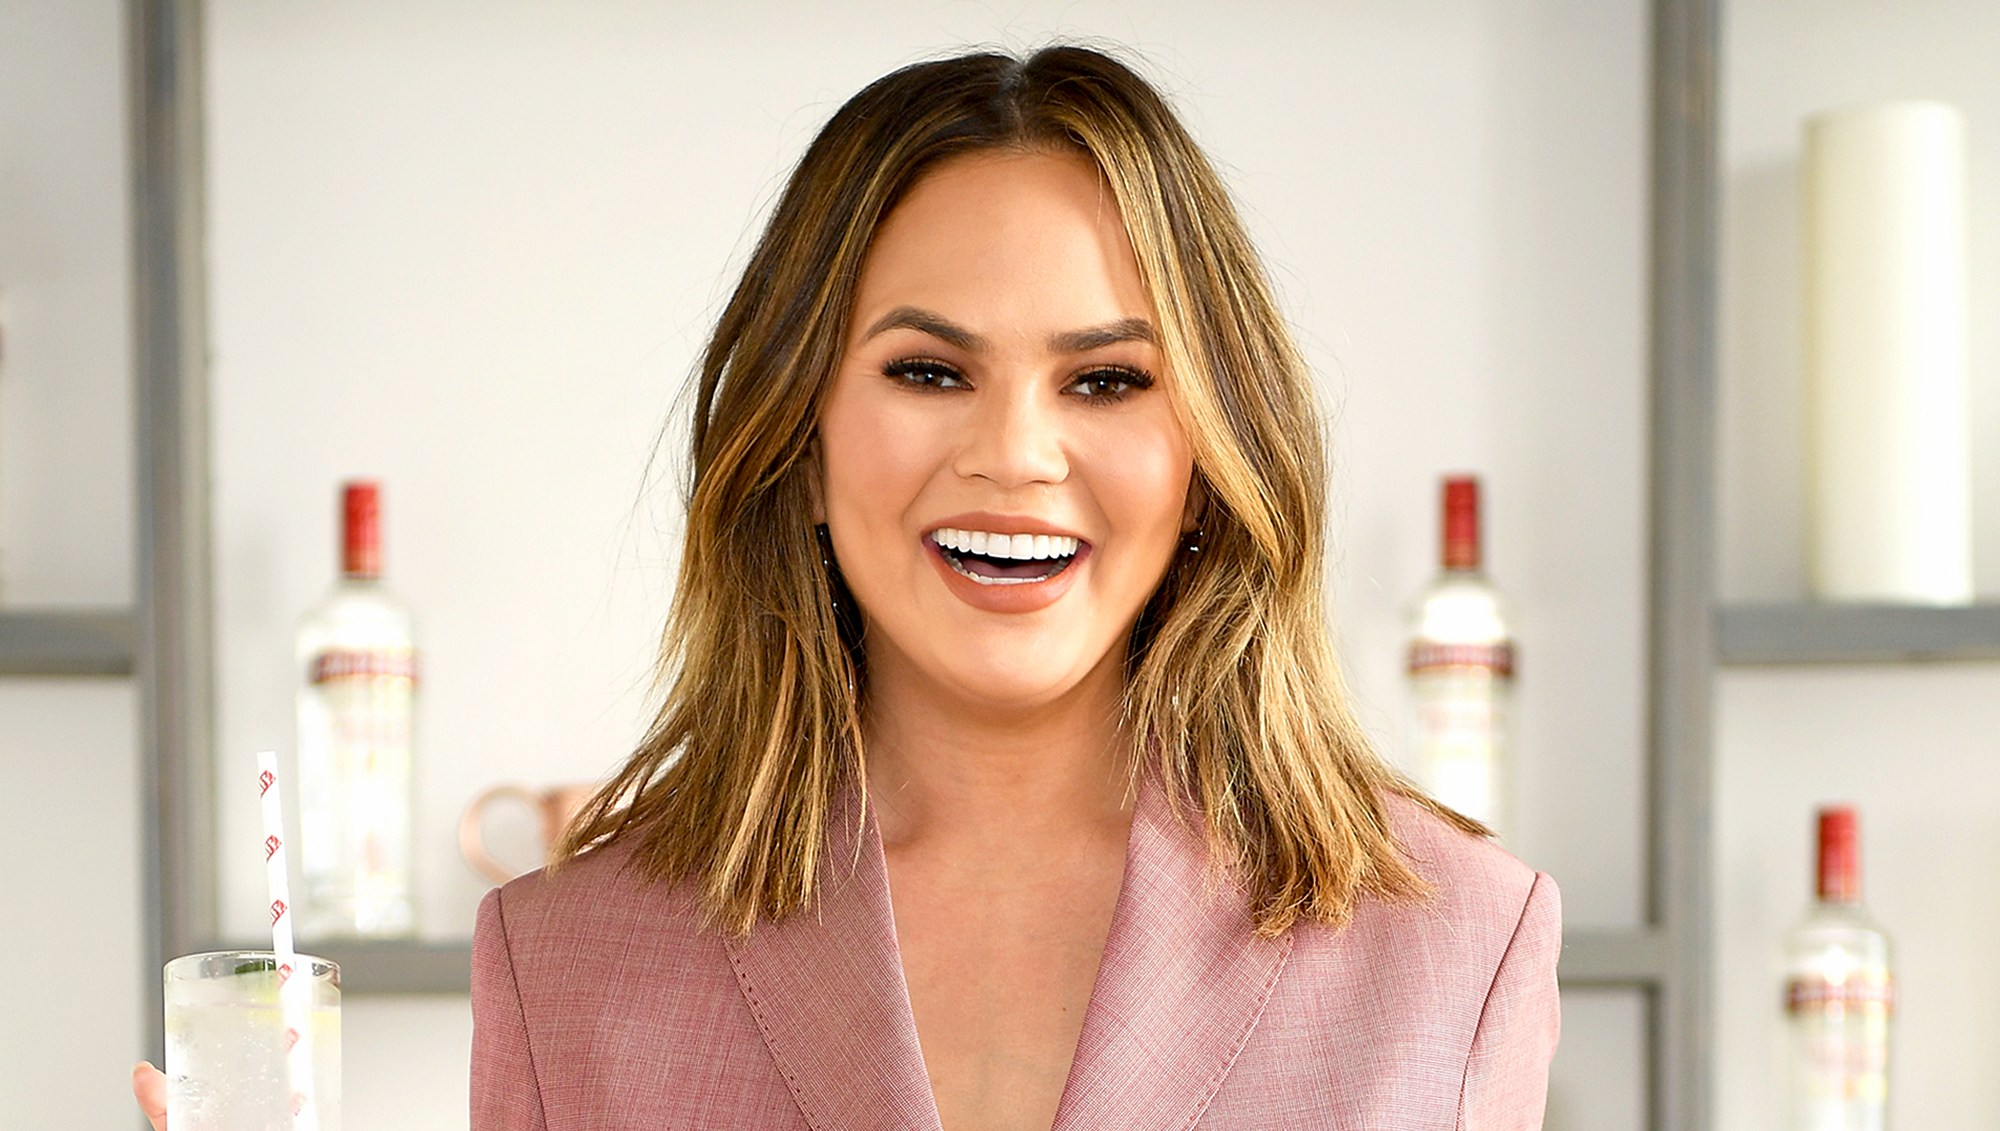 Chrissy Teigen Live-Tweets 'Flight to Nowhere' After Plane Turns Around